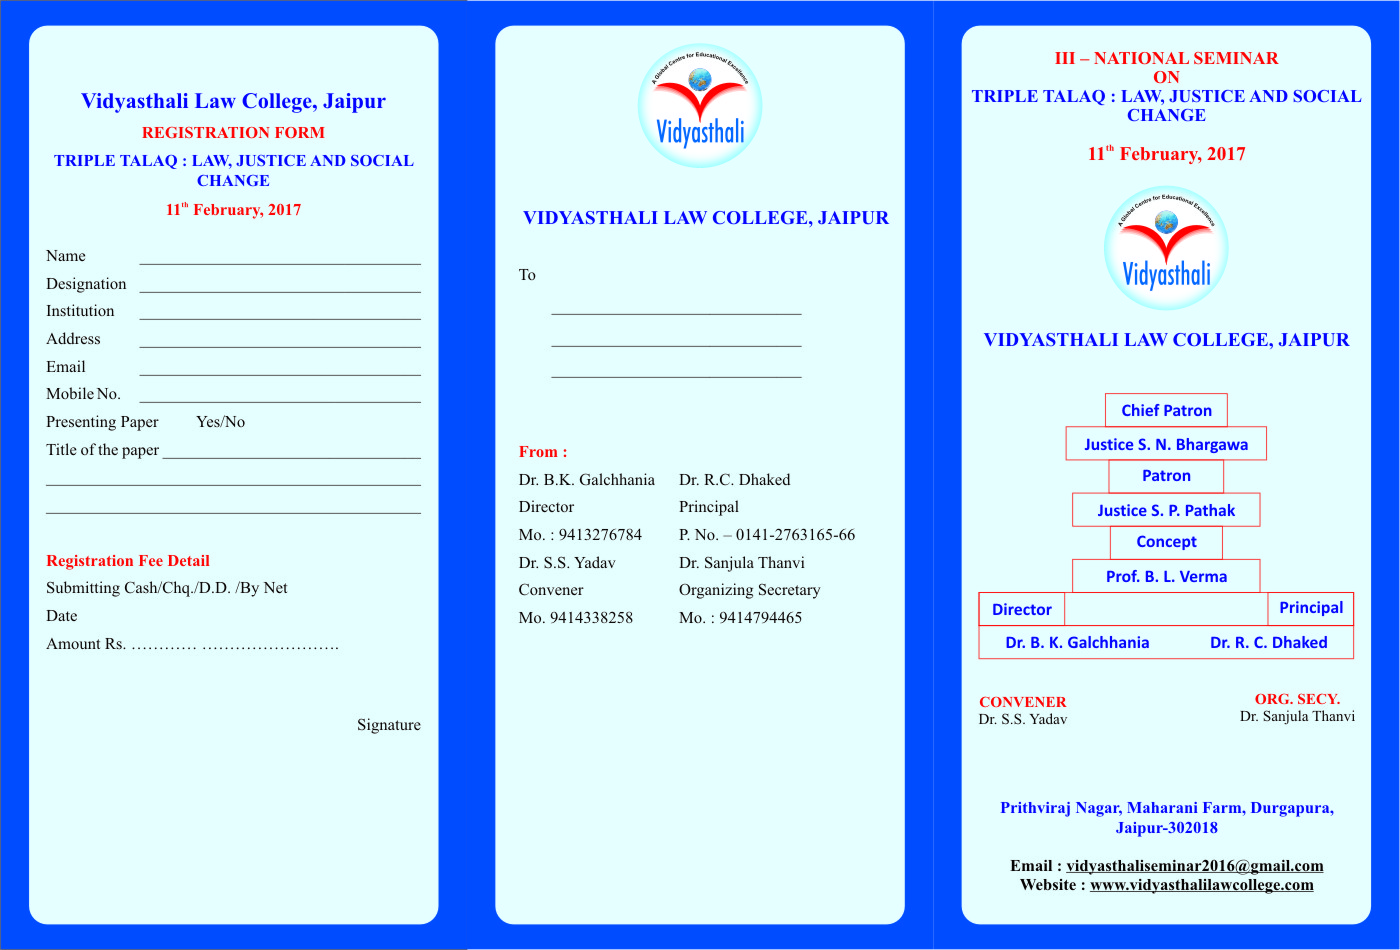 Vishyasthali Law College 3rd Seminar on Triple Talaq